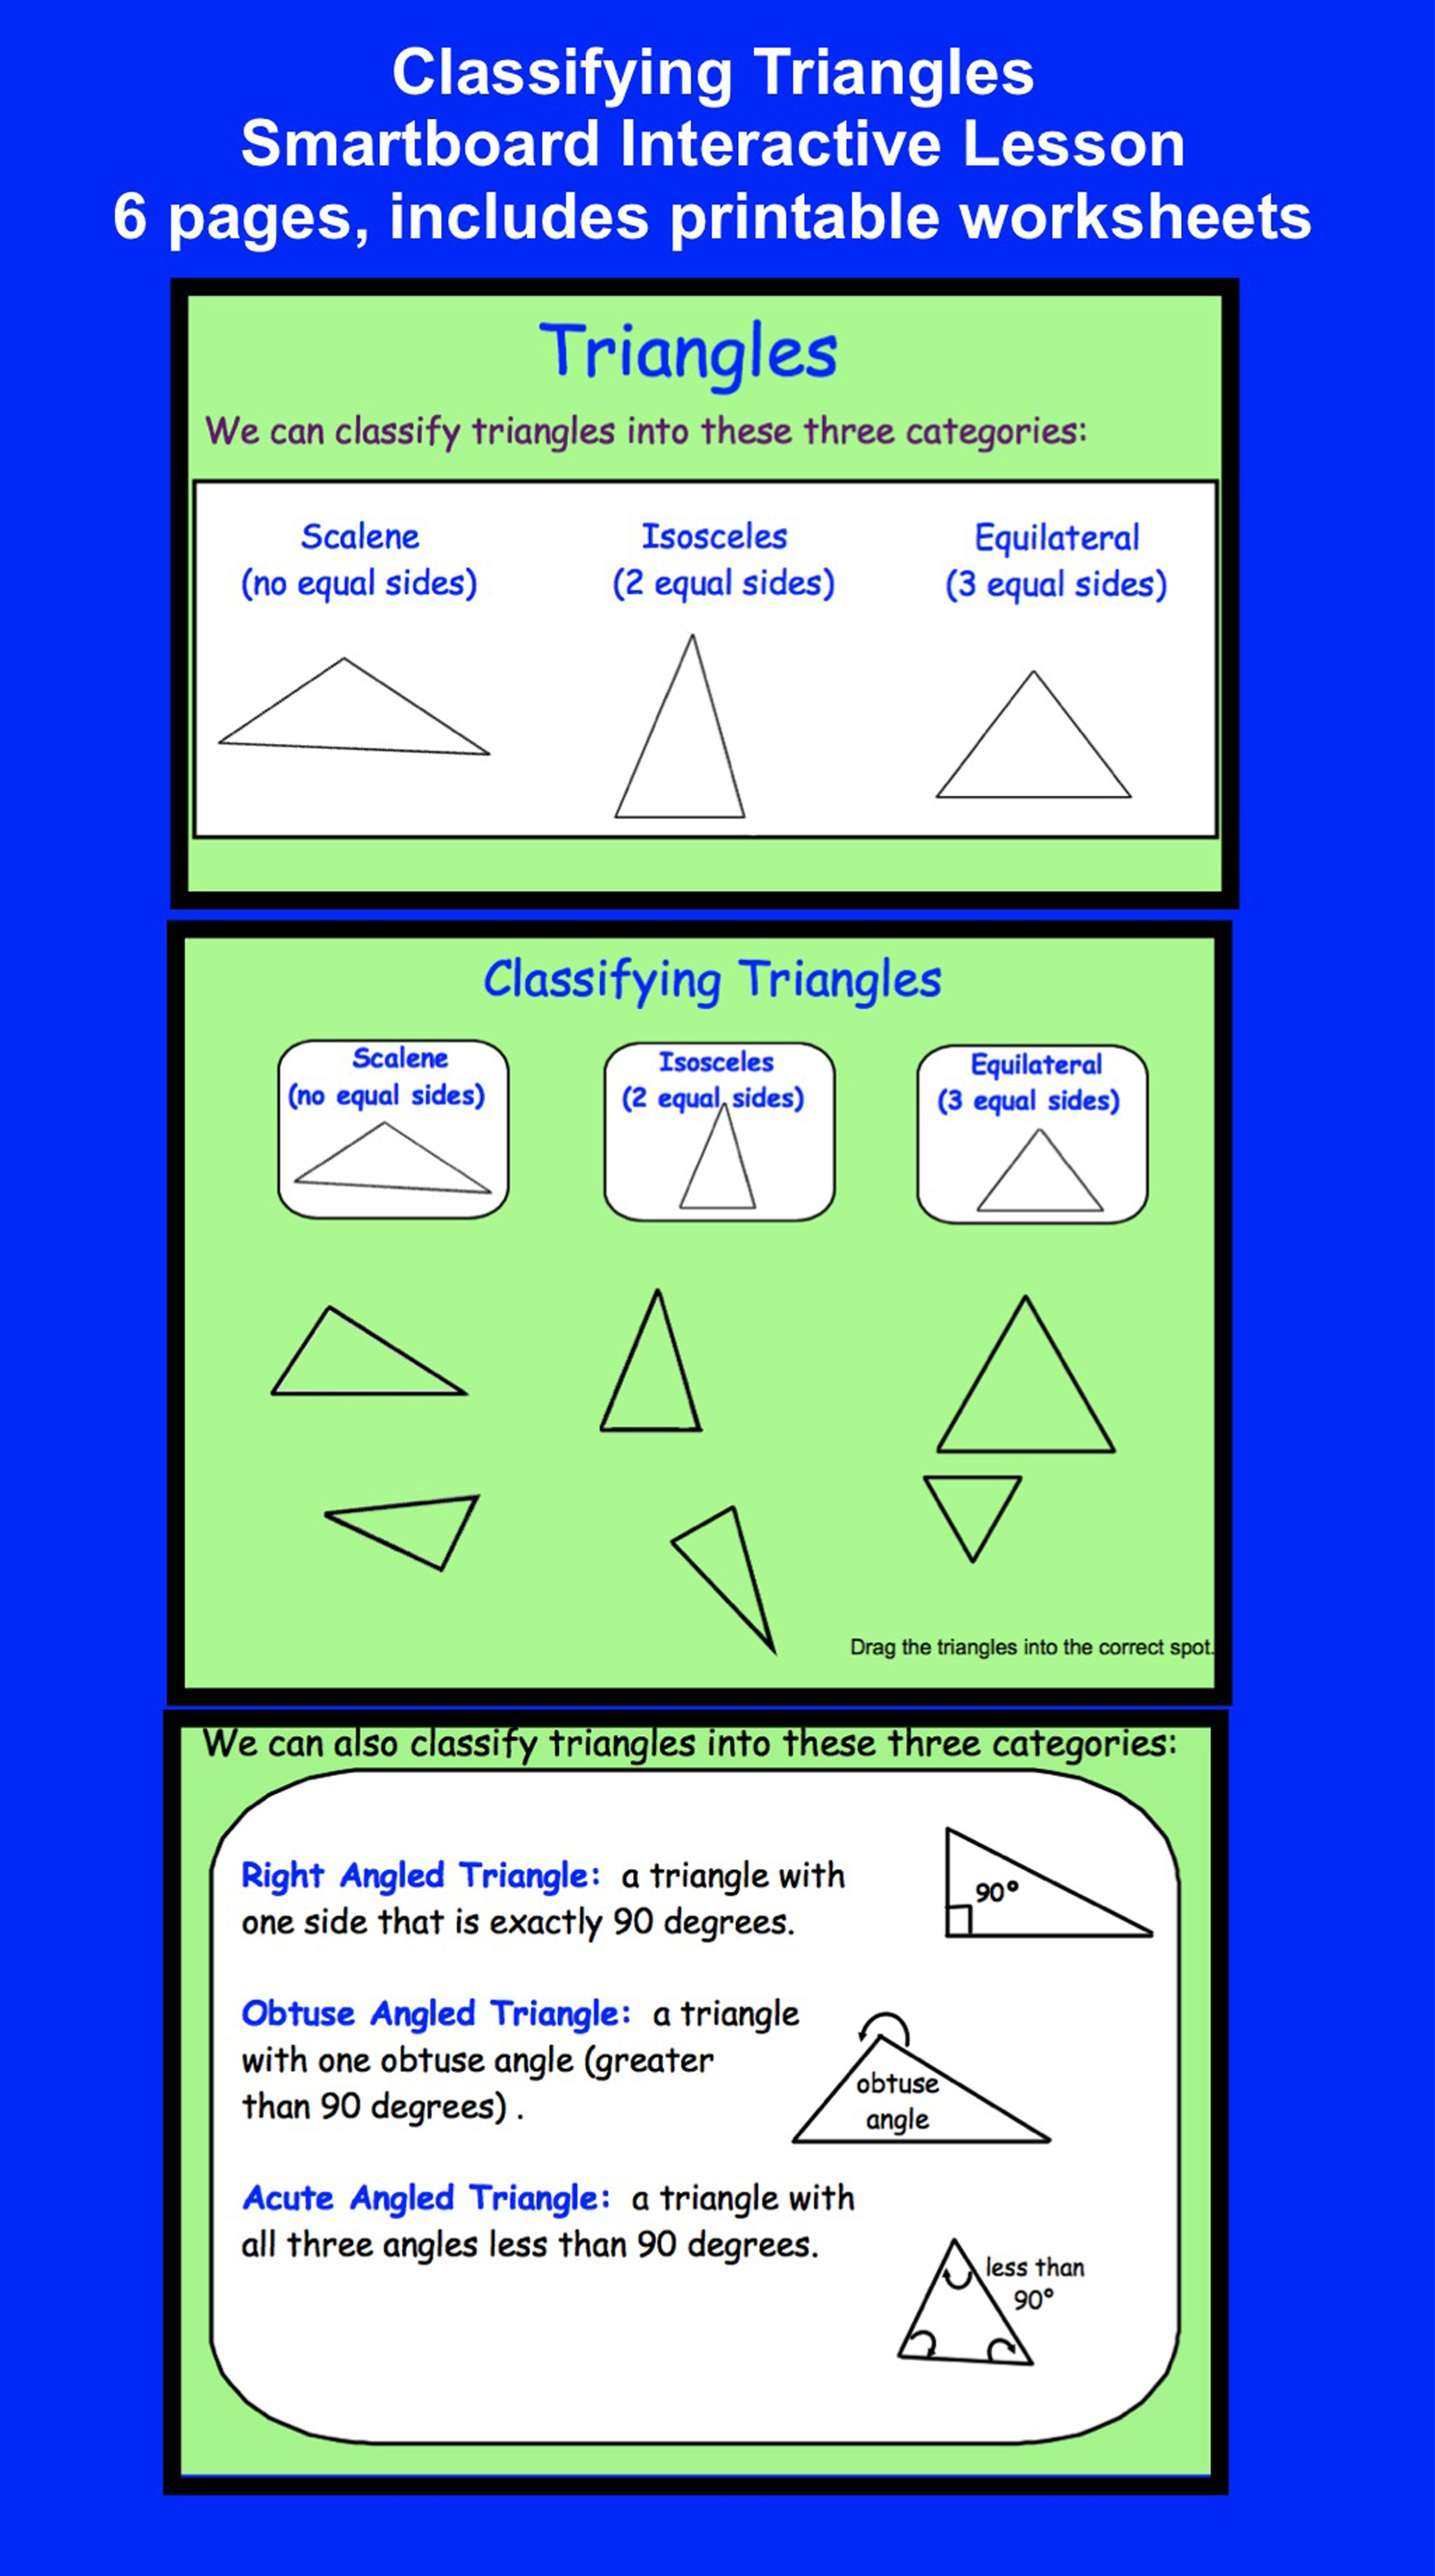 worksheet Classifying Angles smartboard classifying triangles interactive printable angles lesson 6 pages includes worksheets